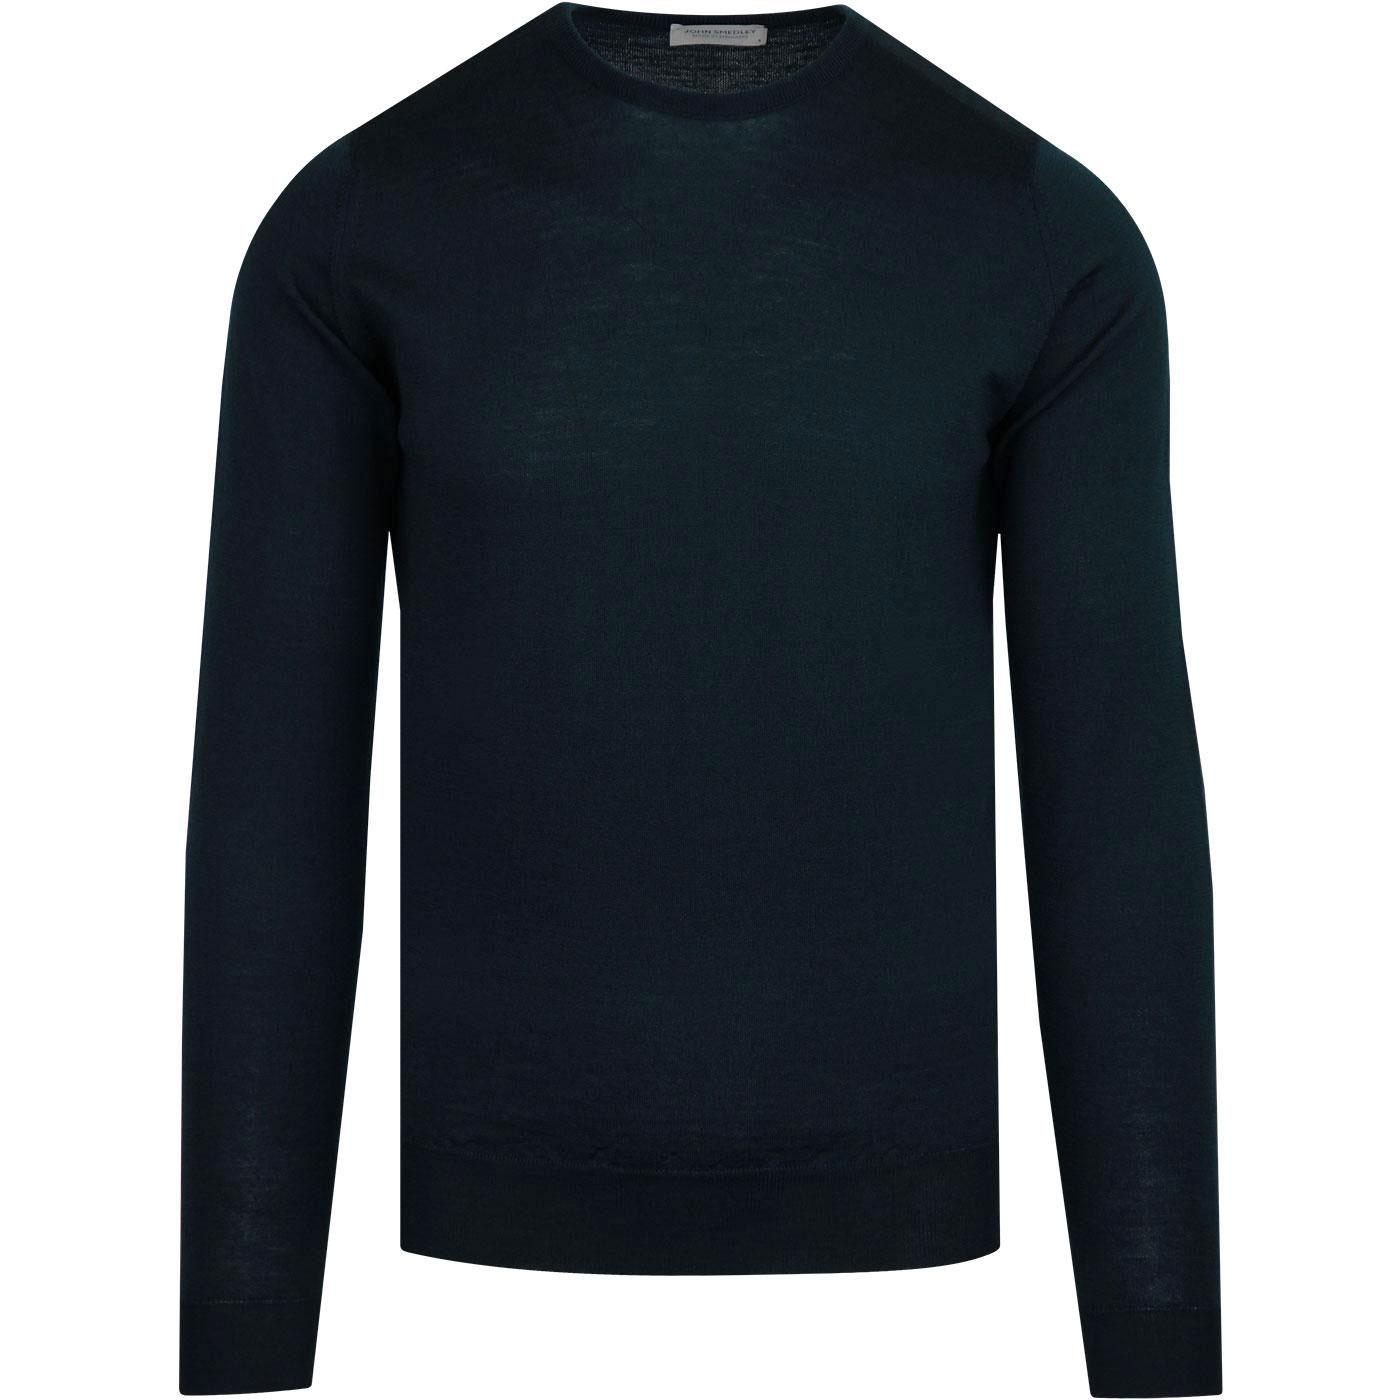 Lundy JOHN SMEDLEY Made in England Jumper (OG)